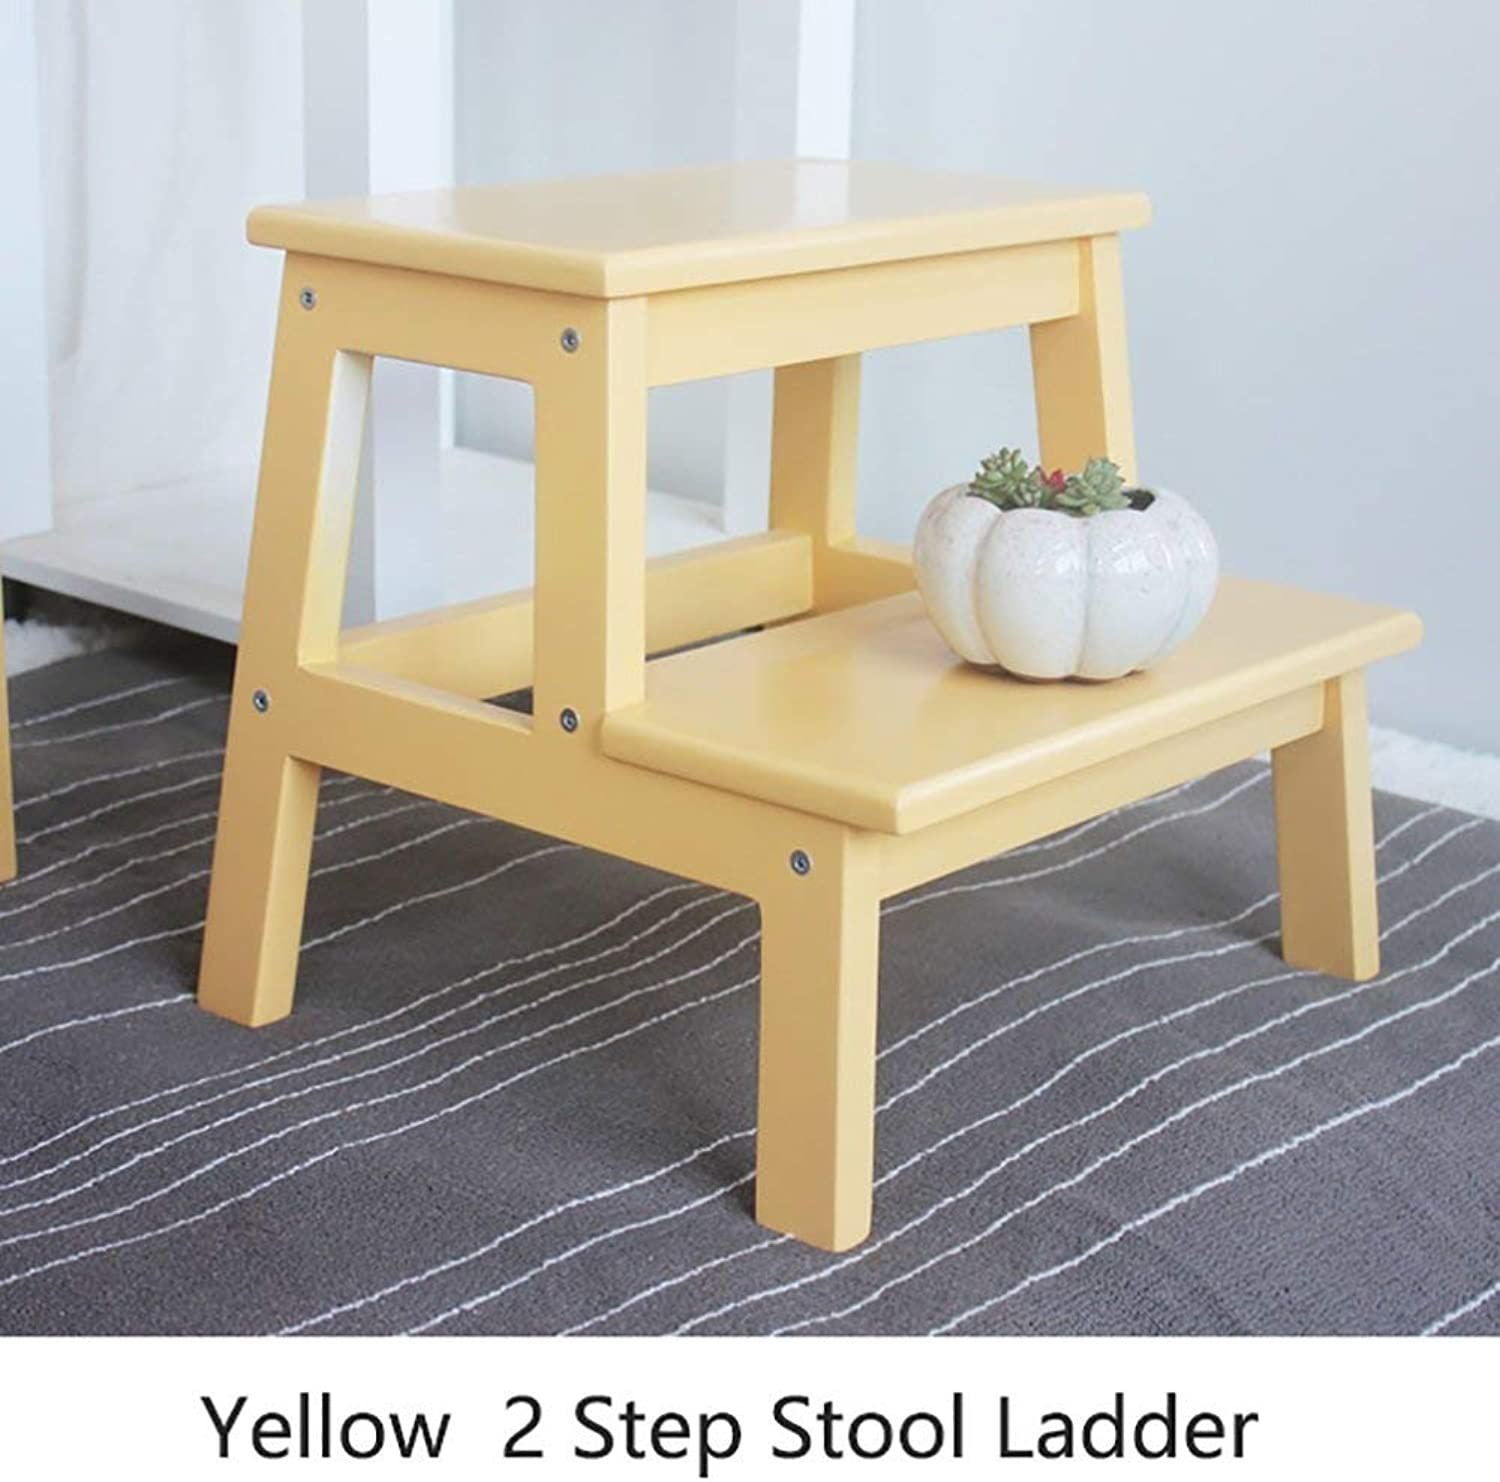 XITER Step stools Wood Small 2 Step Stool Ladder for Kids Indoor Kitchen Wooden Small Foot Stools Portable Flower Rack shoes Bench (color   Yellow)